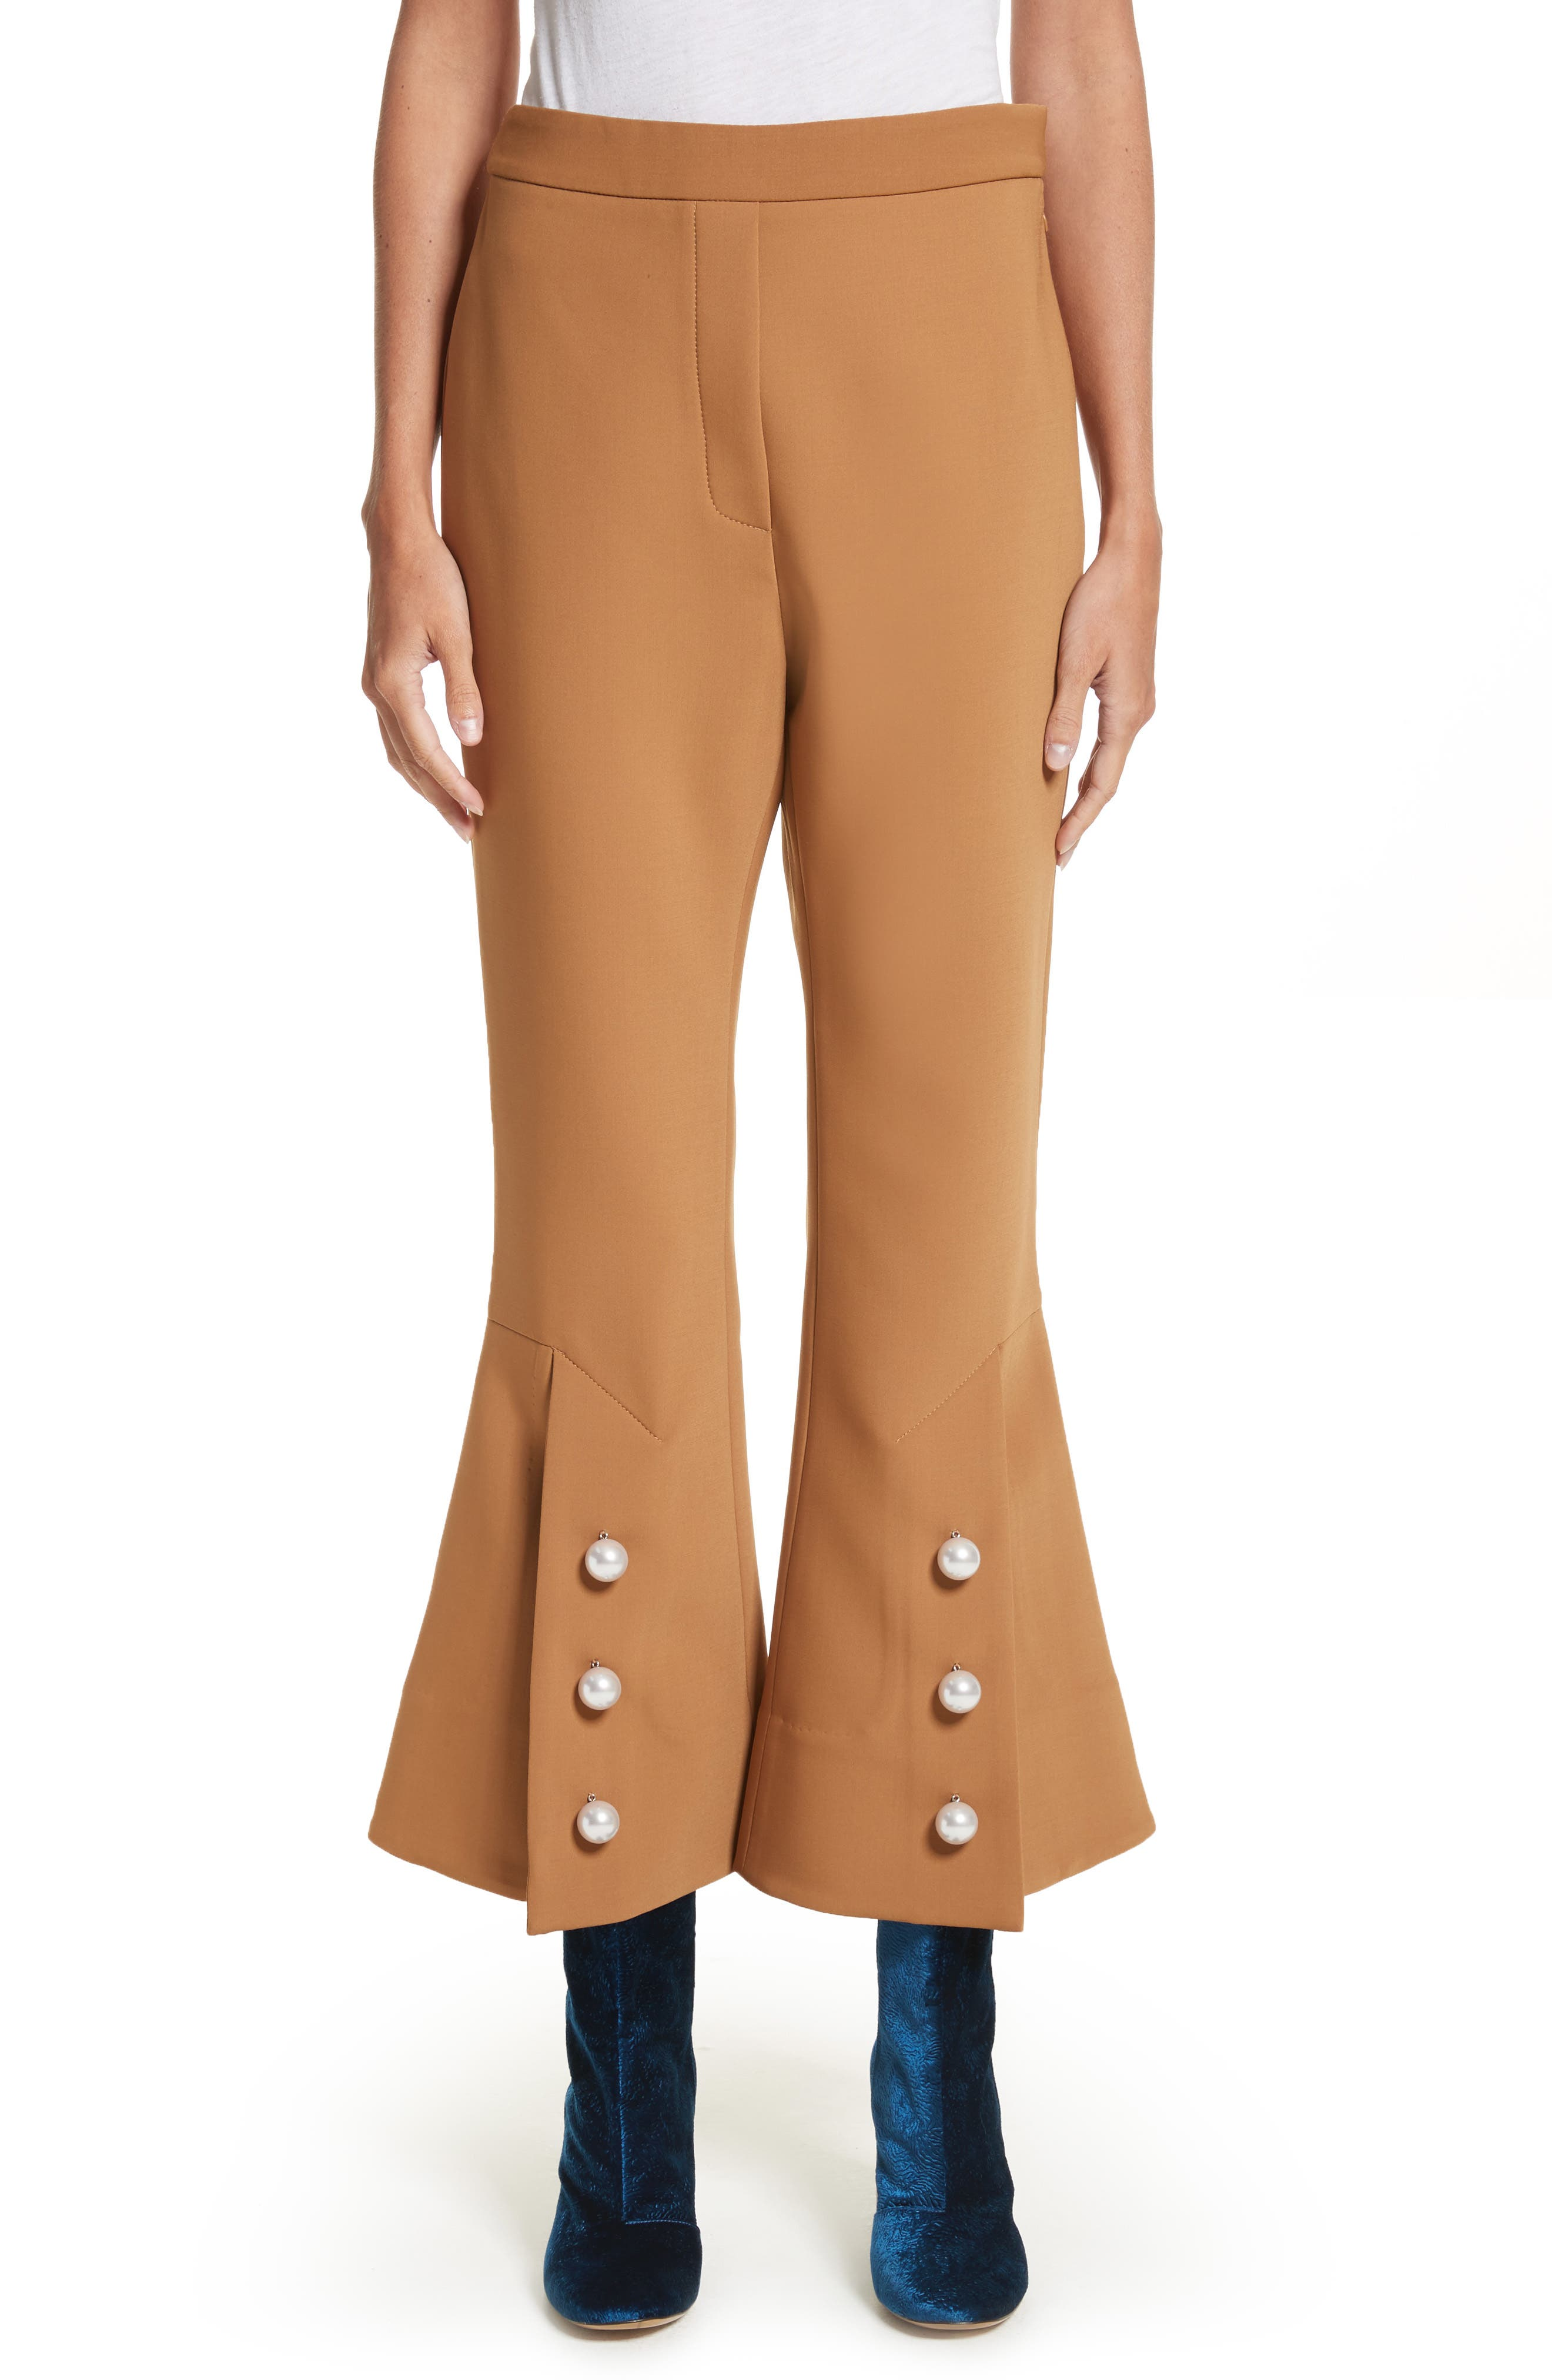 Fourth Element Crop Flare Pants,                         Main,                         color, 250